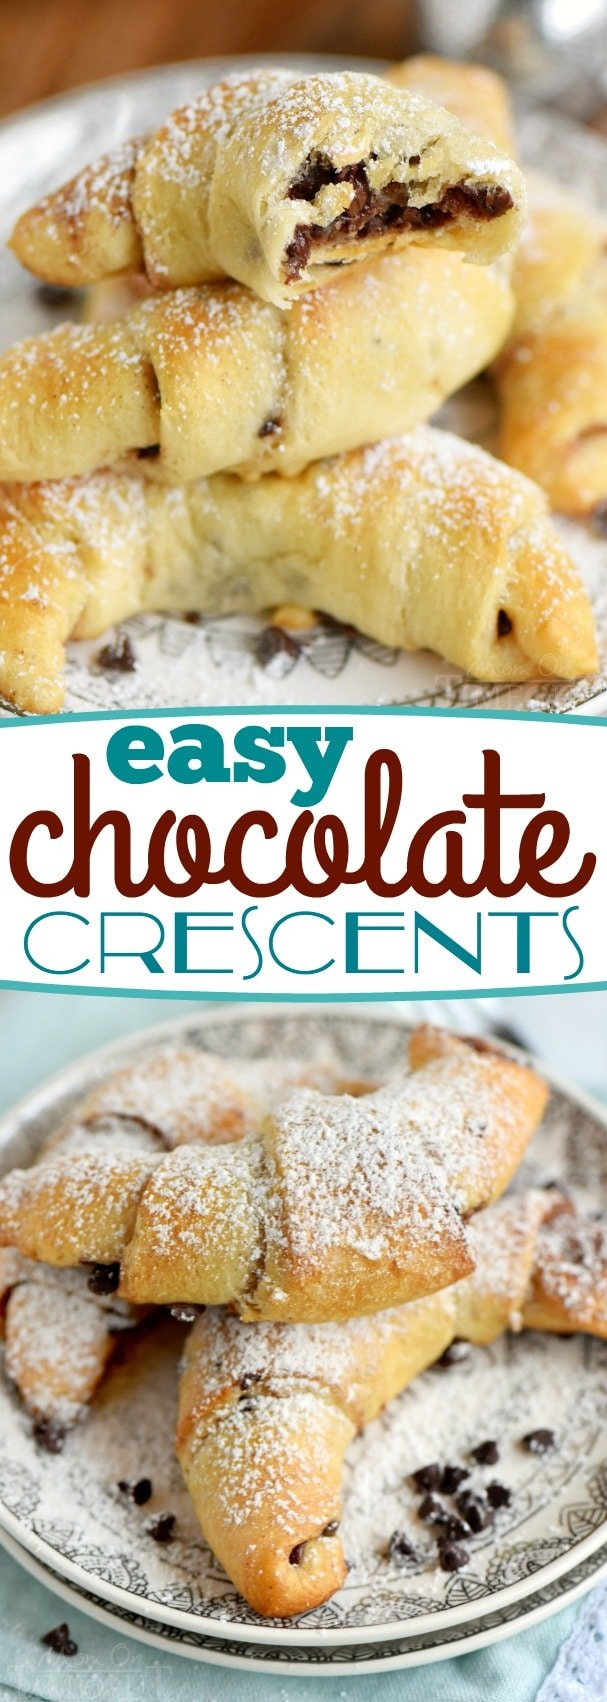 These Easy Chocolate Crescents take just minutes to prepare and use only 4 ingredients! Top with a sweet dusting of powdered sugar and you'll find them hard to resist. Great for breakfast, brunch, or dessert! // Mom On Timeout